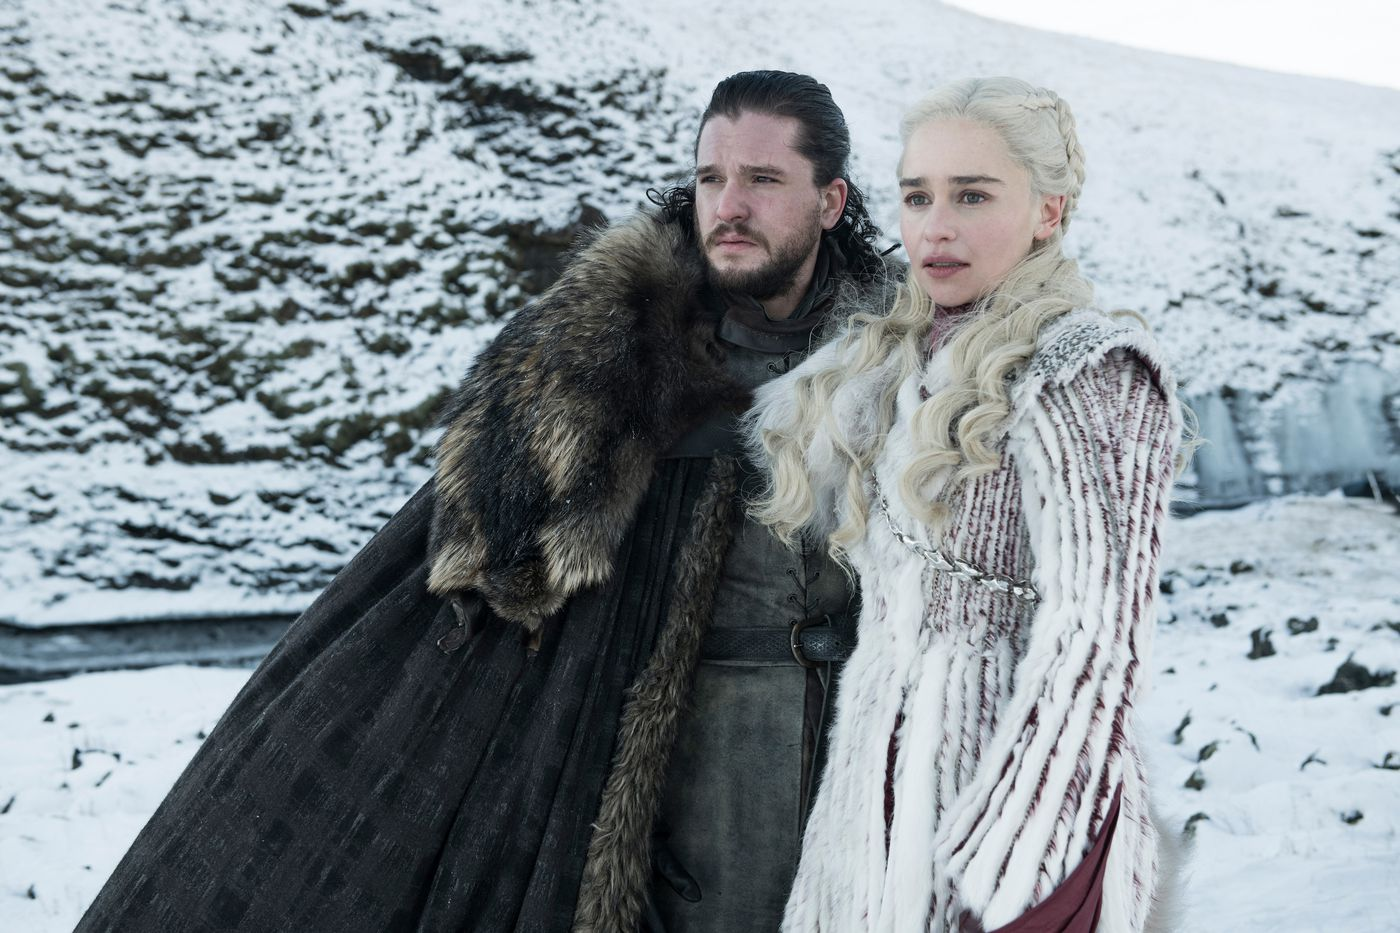 Jon Snow and Daenerys in Game of Thrones. Credit: HBO